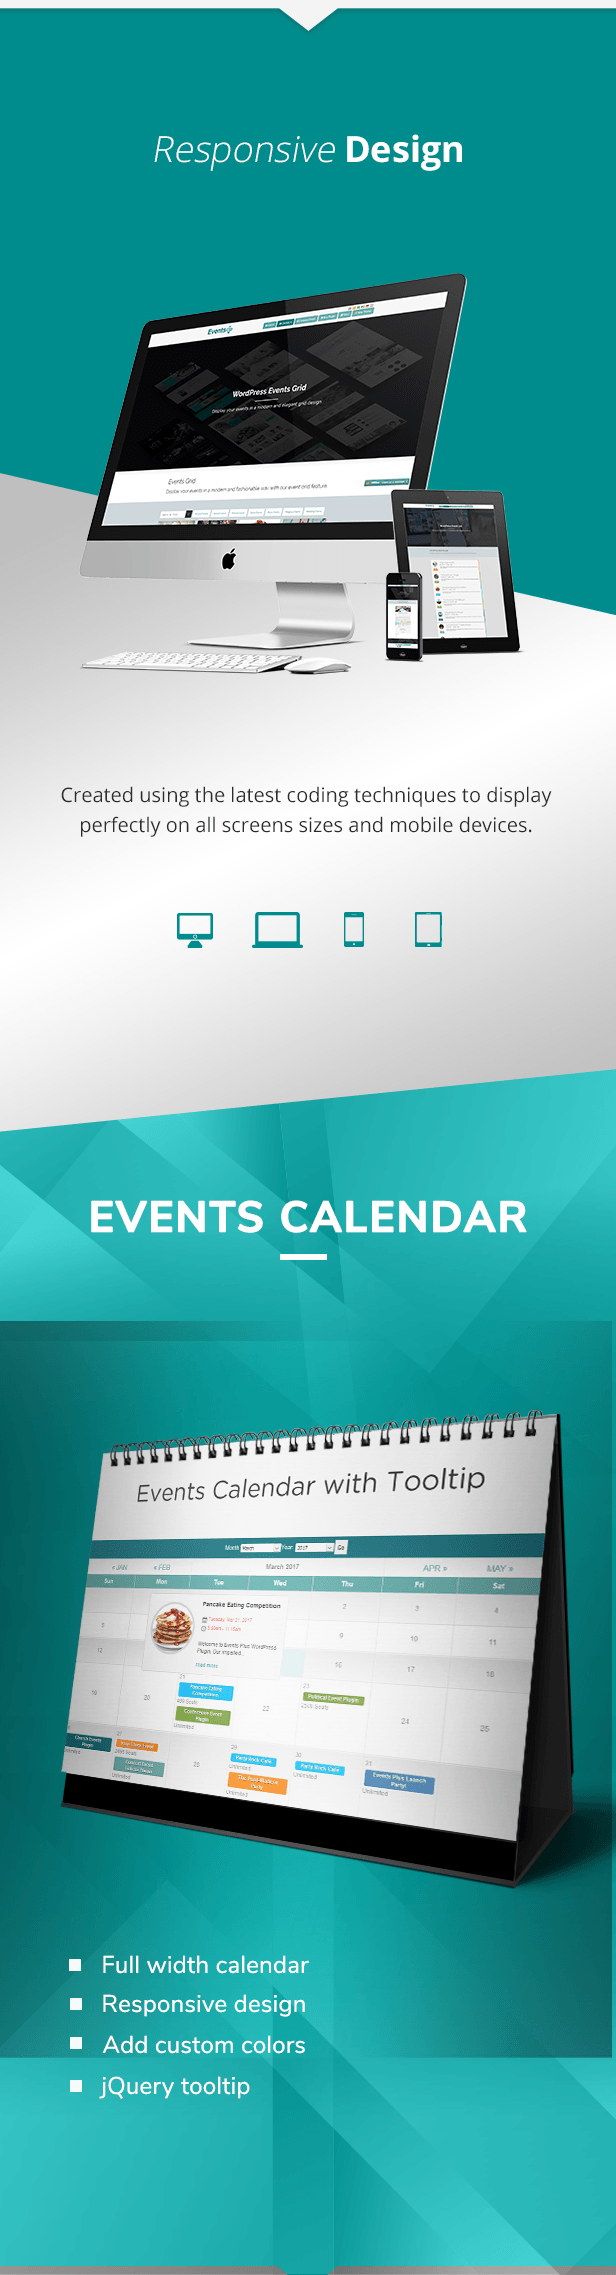 Google Calendar Responsive Design : Events calendar registration booking by elbisnero